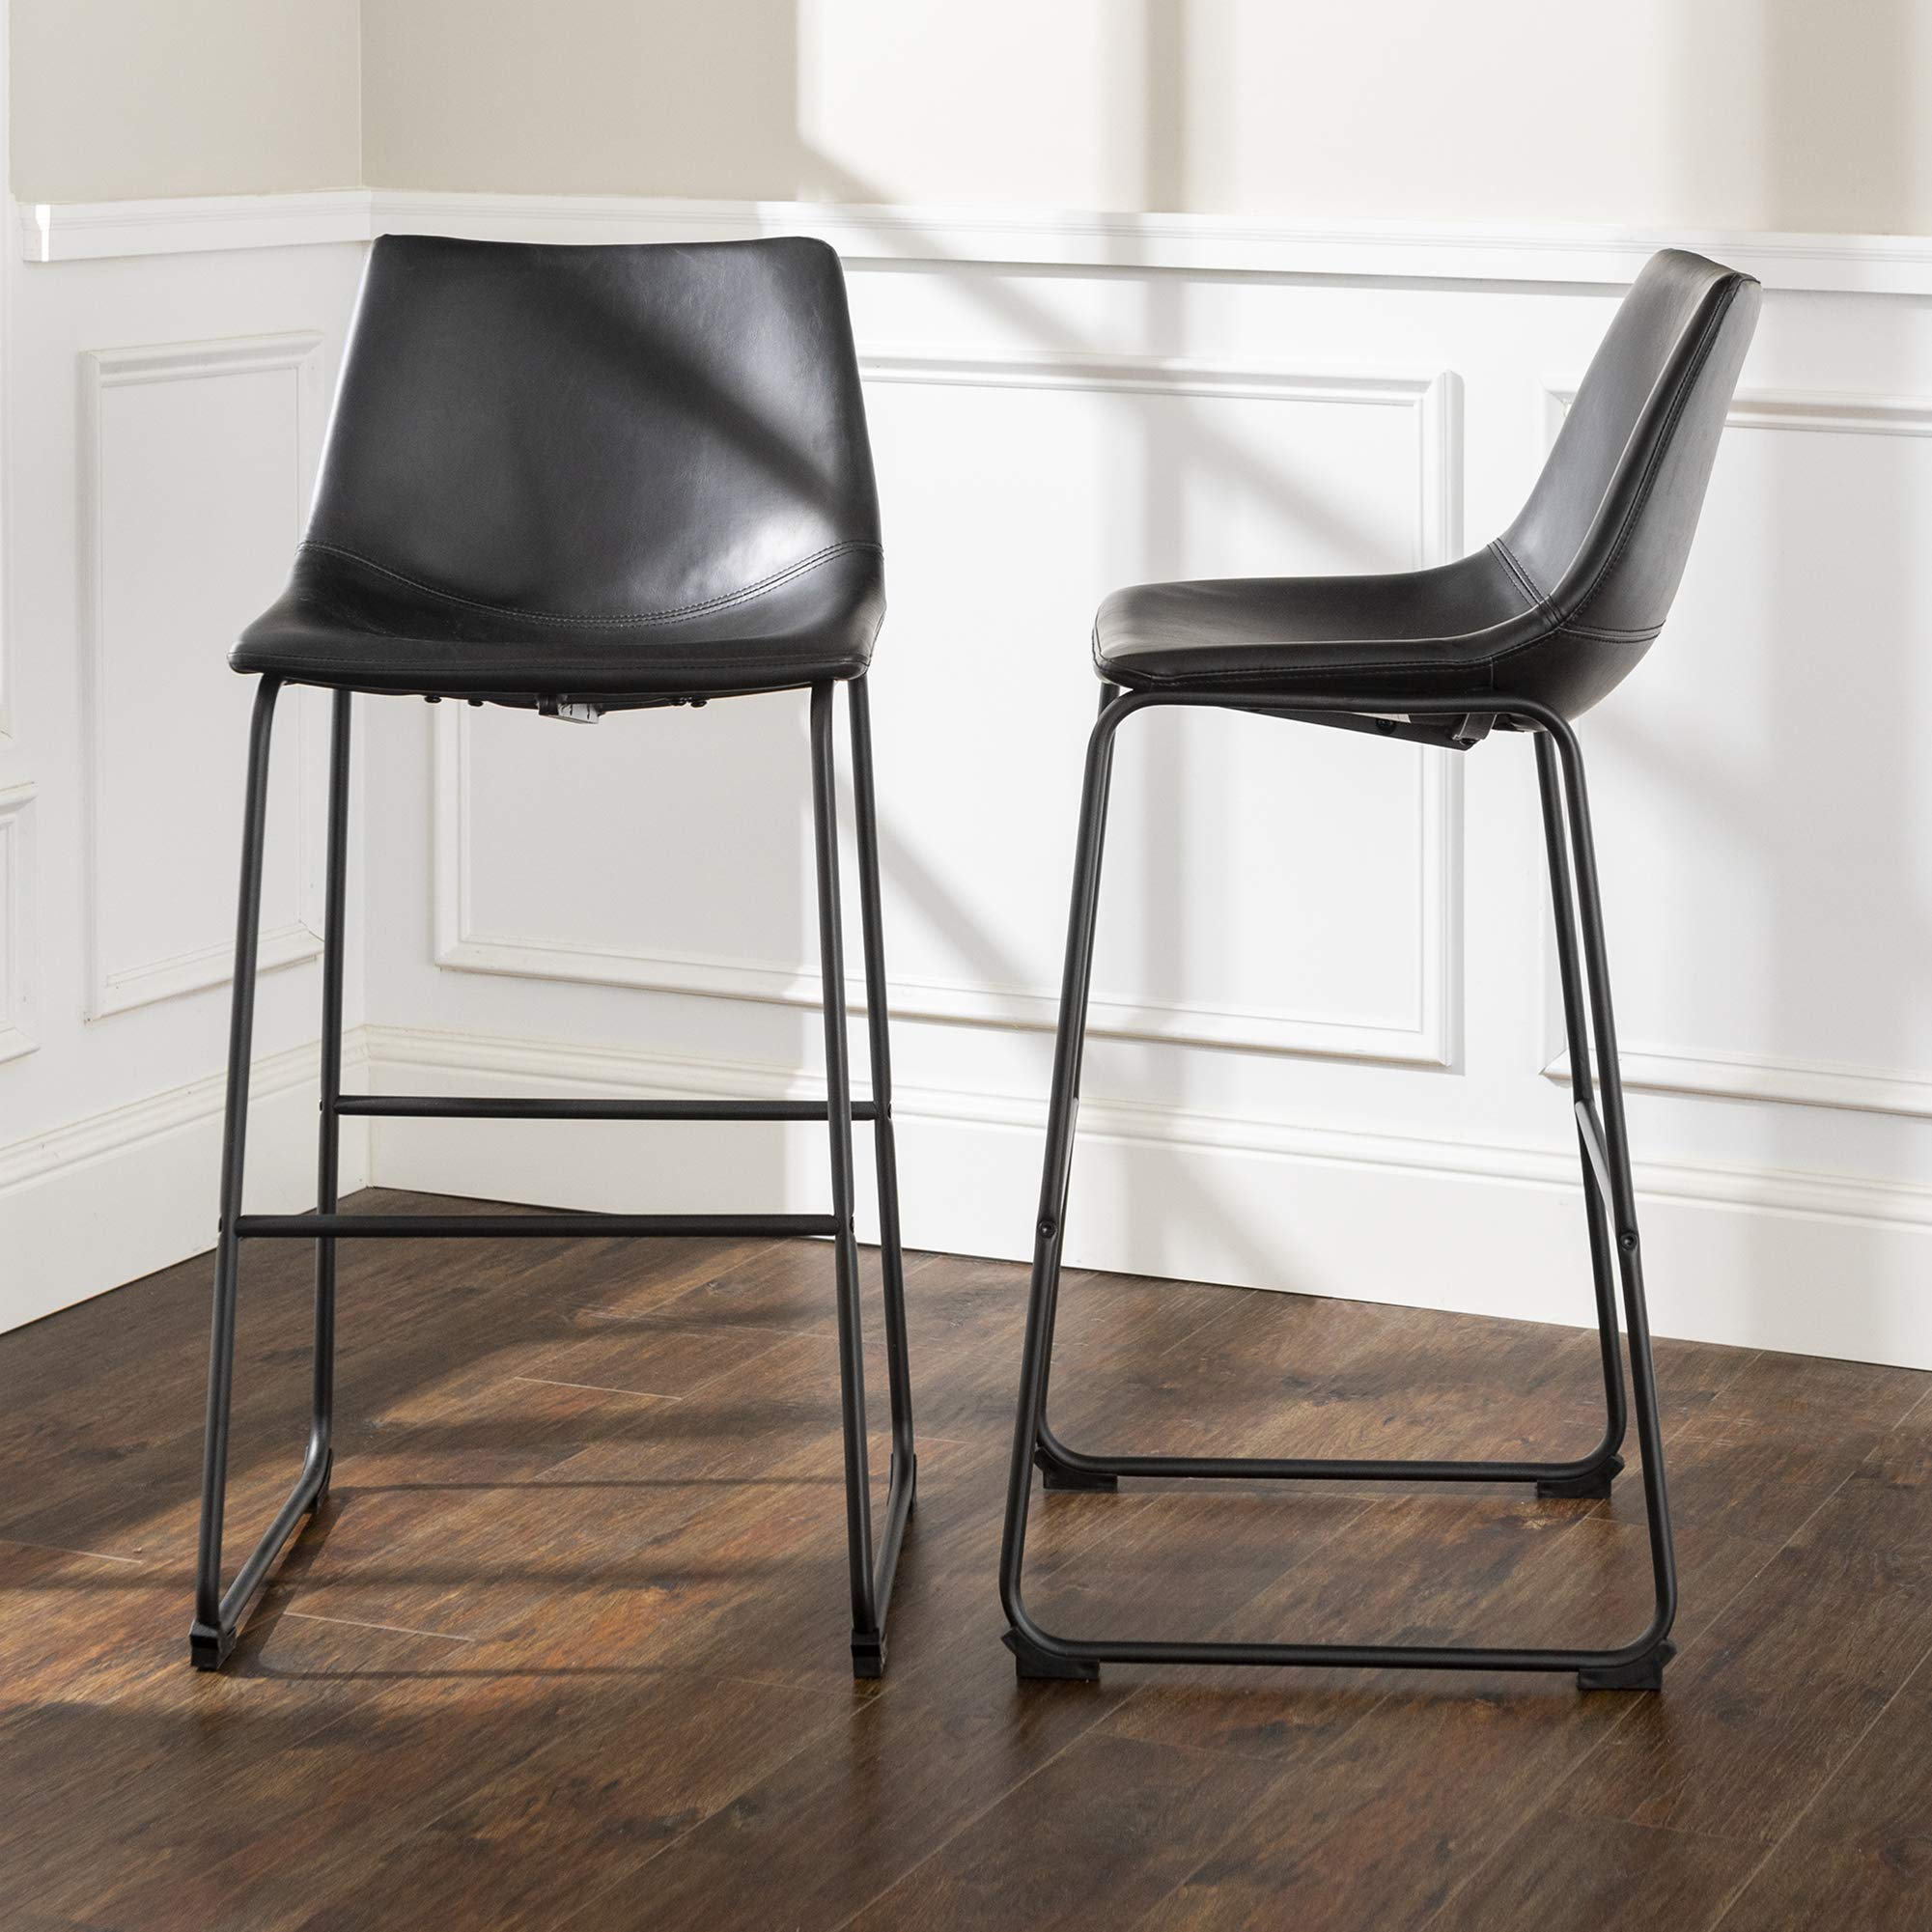 WE Furniture Black Faux Leather Barstool, Set of 2 by WE Furniture